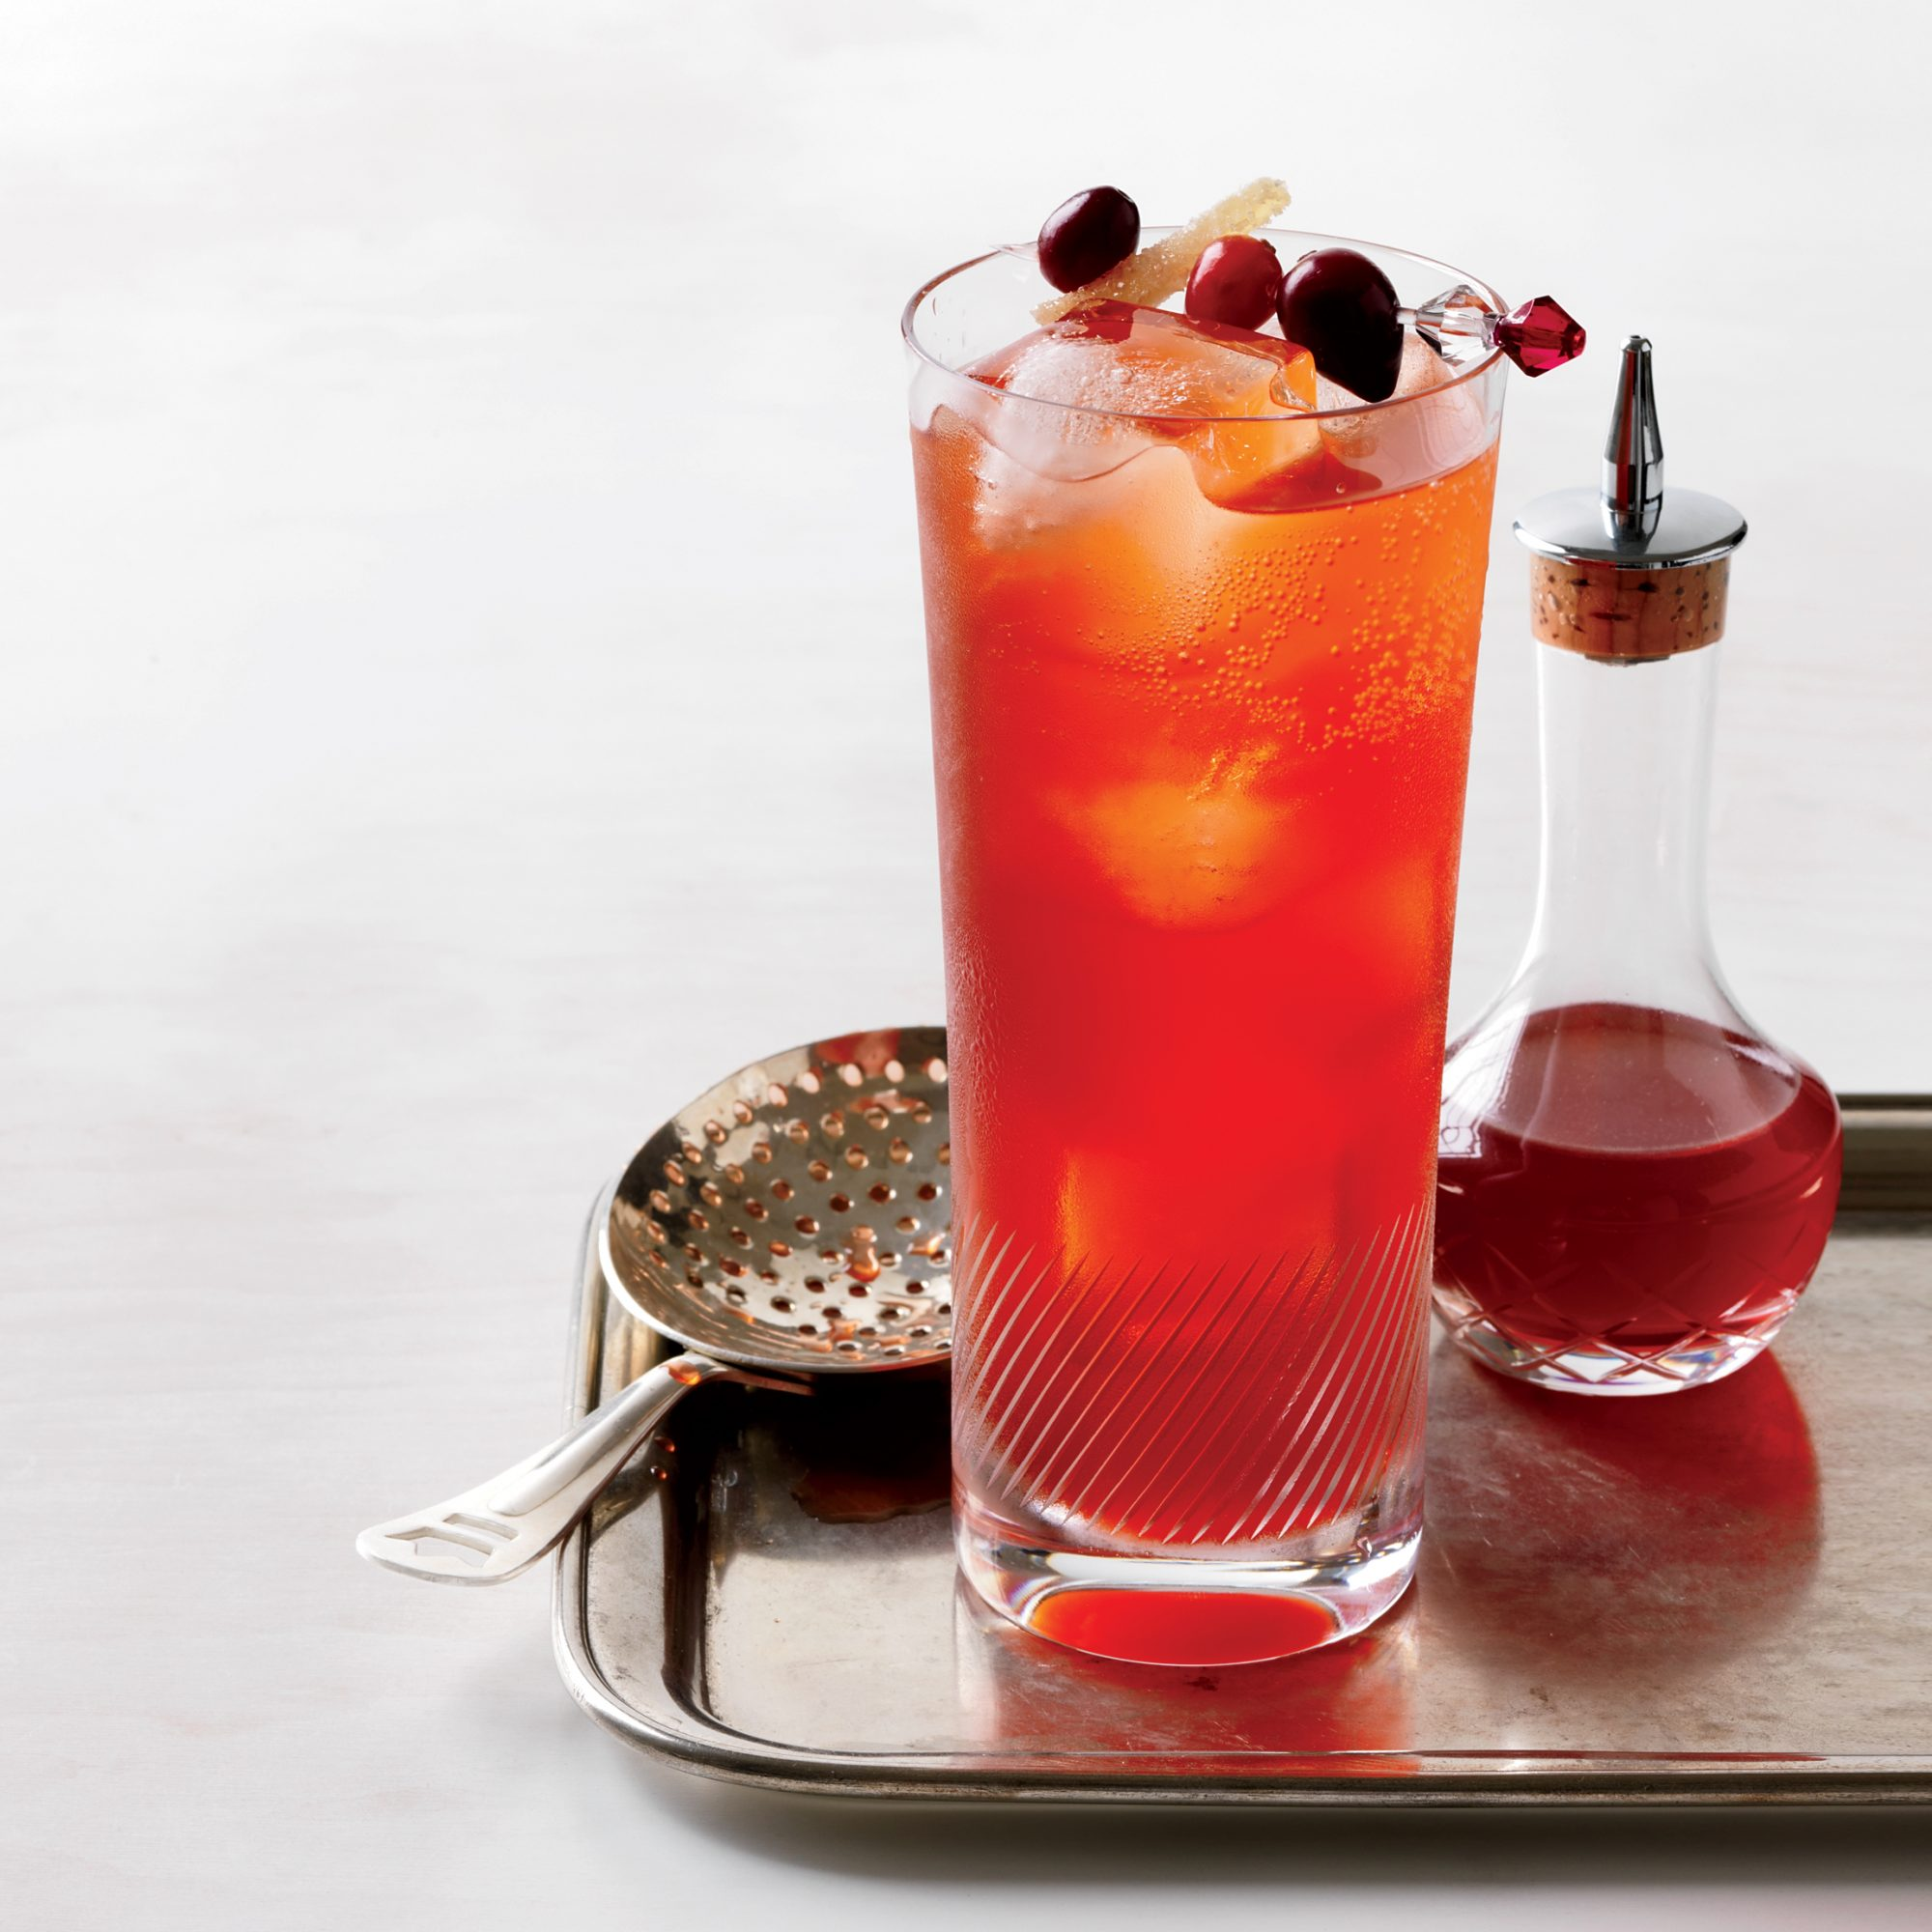 Cranberry-Spice Cocktail recipe